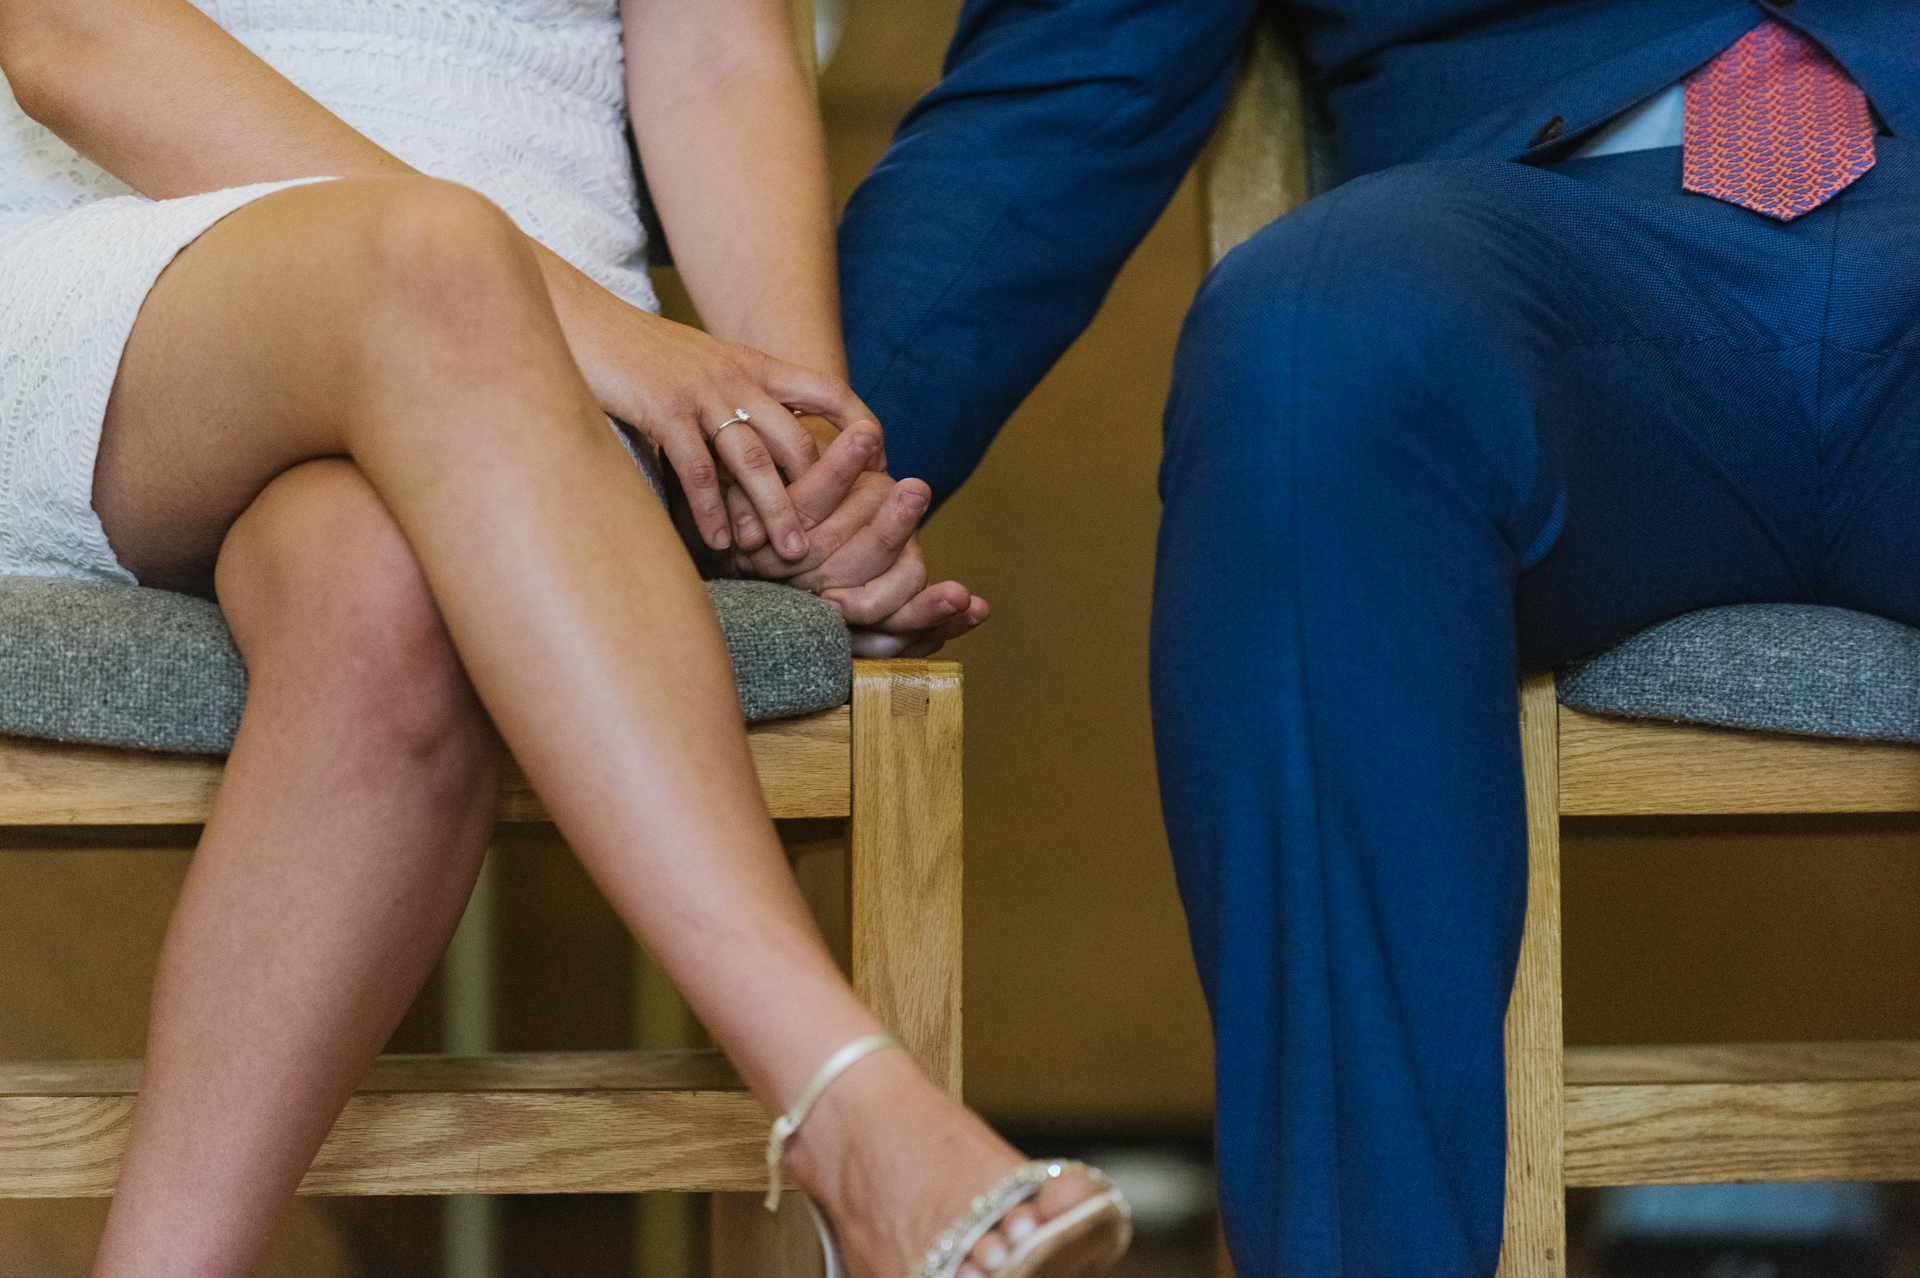 St. Mary of the Angels Chapel Wedding Detail Photo | The couple holds hands while seated